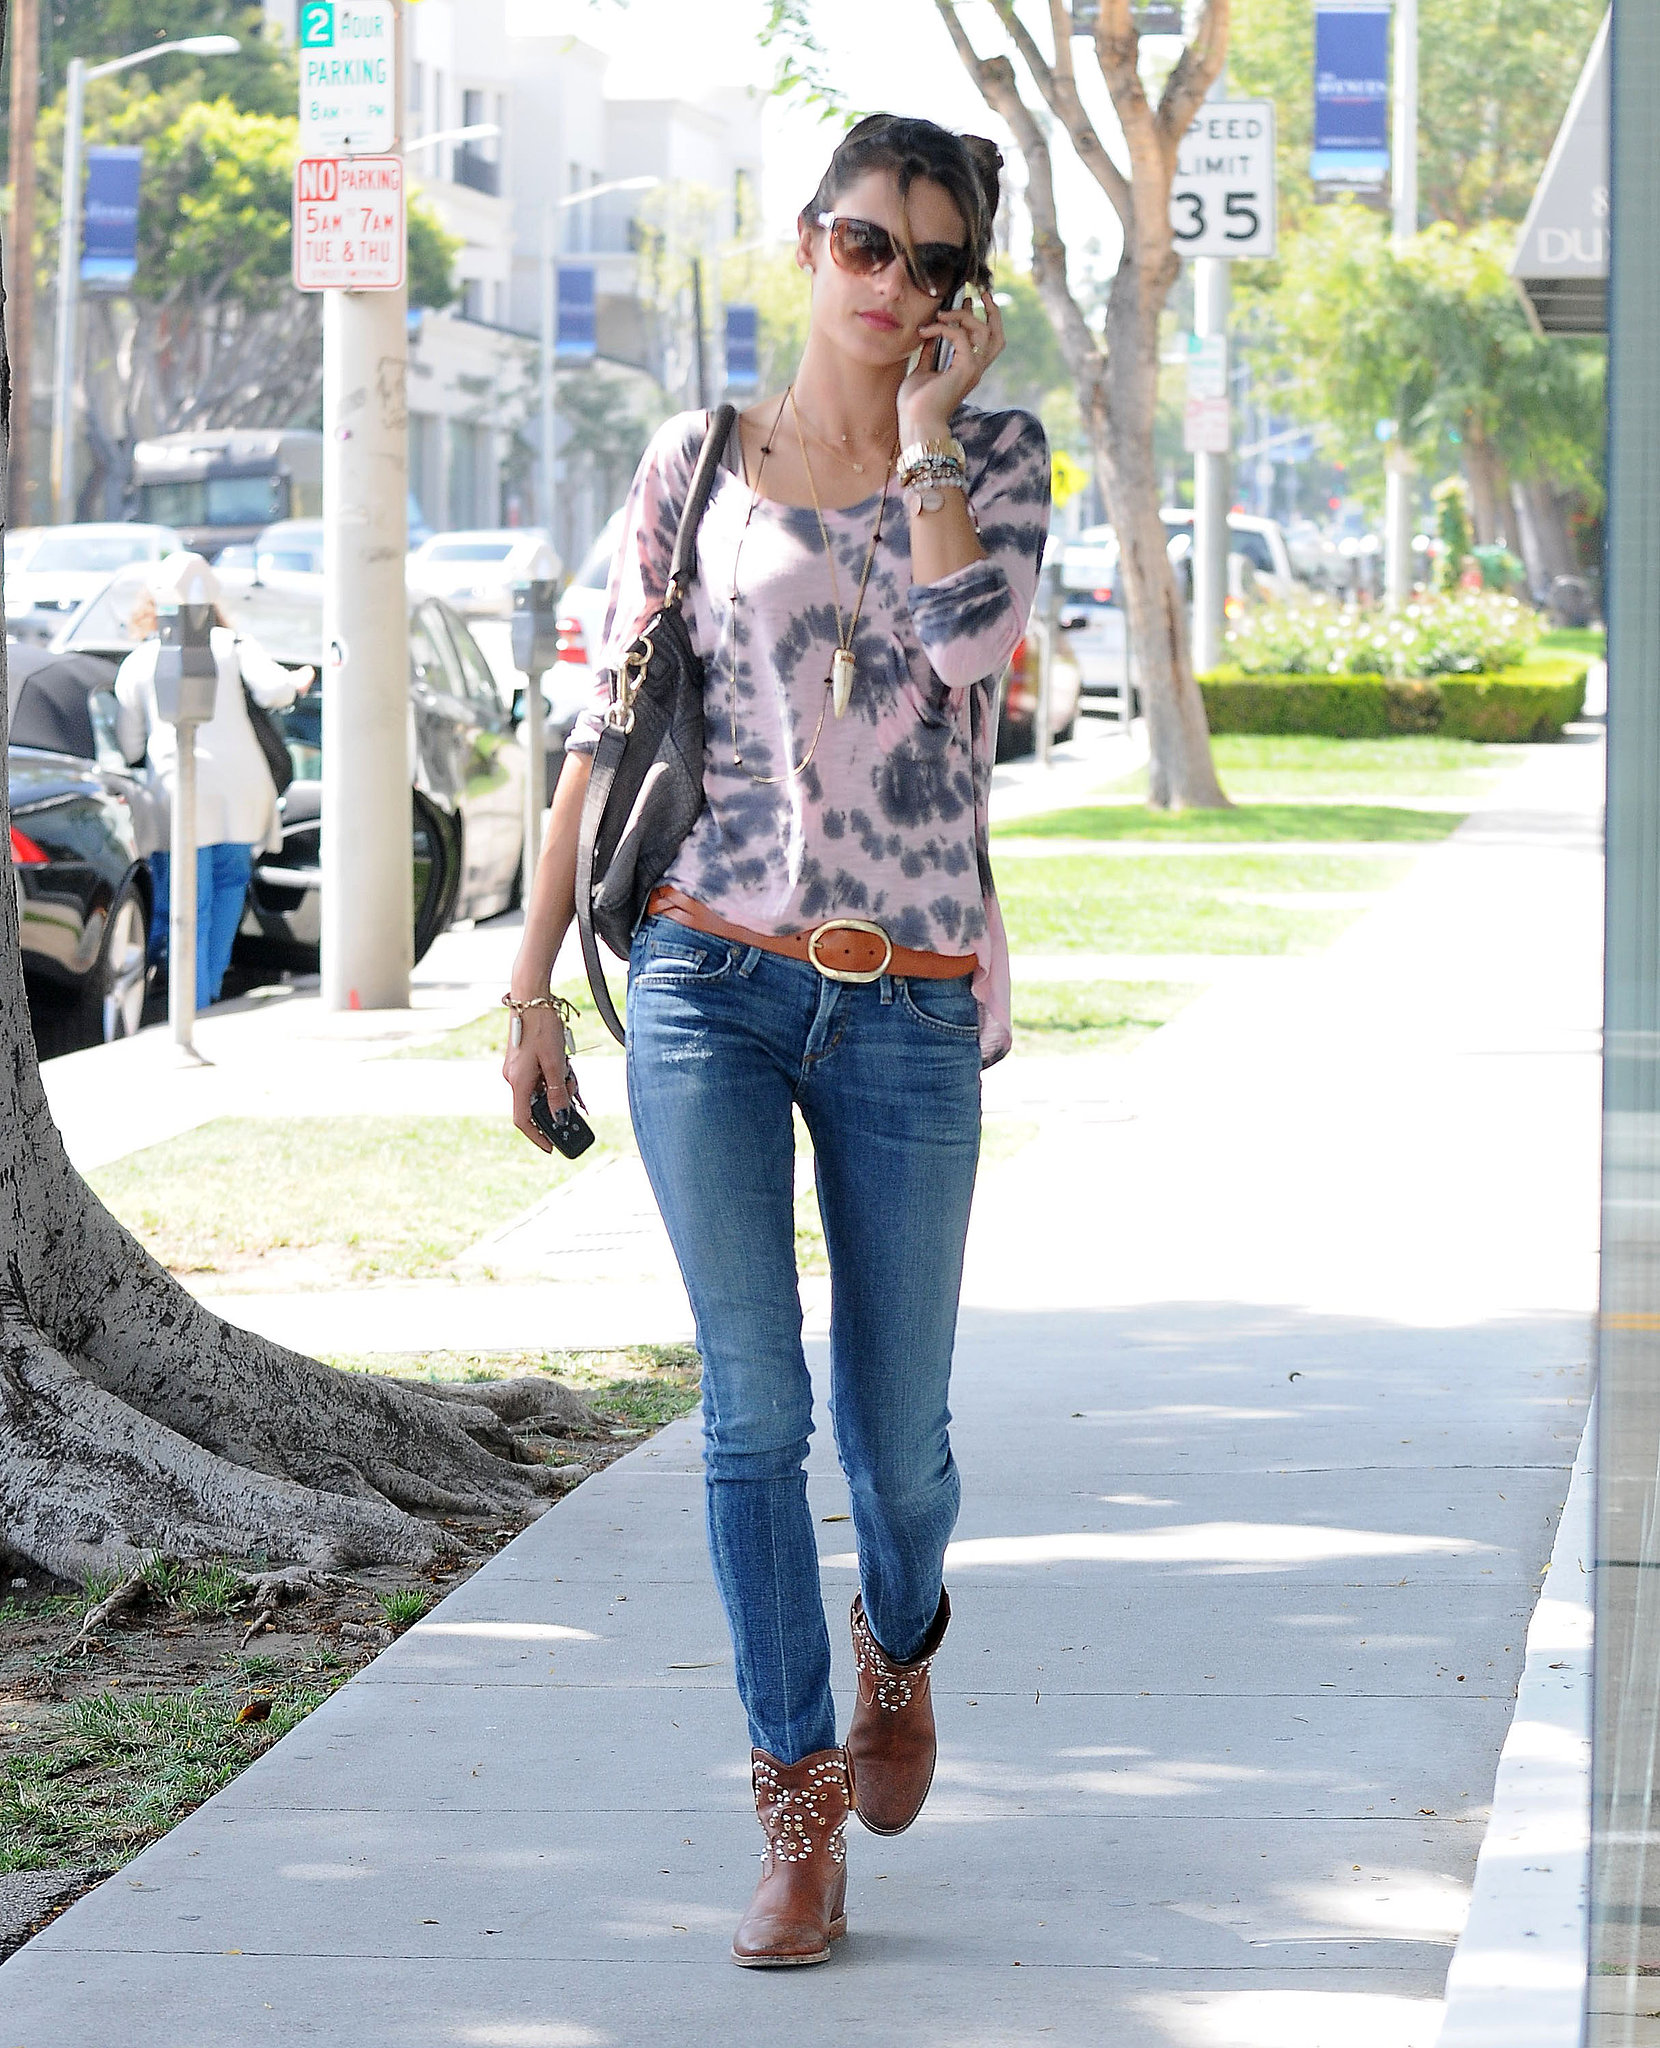 Alessandra Ambrosio worked a tie-dye top with skinny Citizens